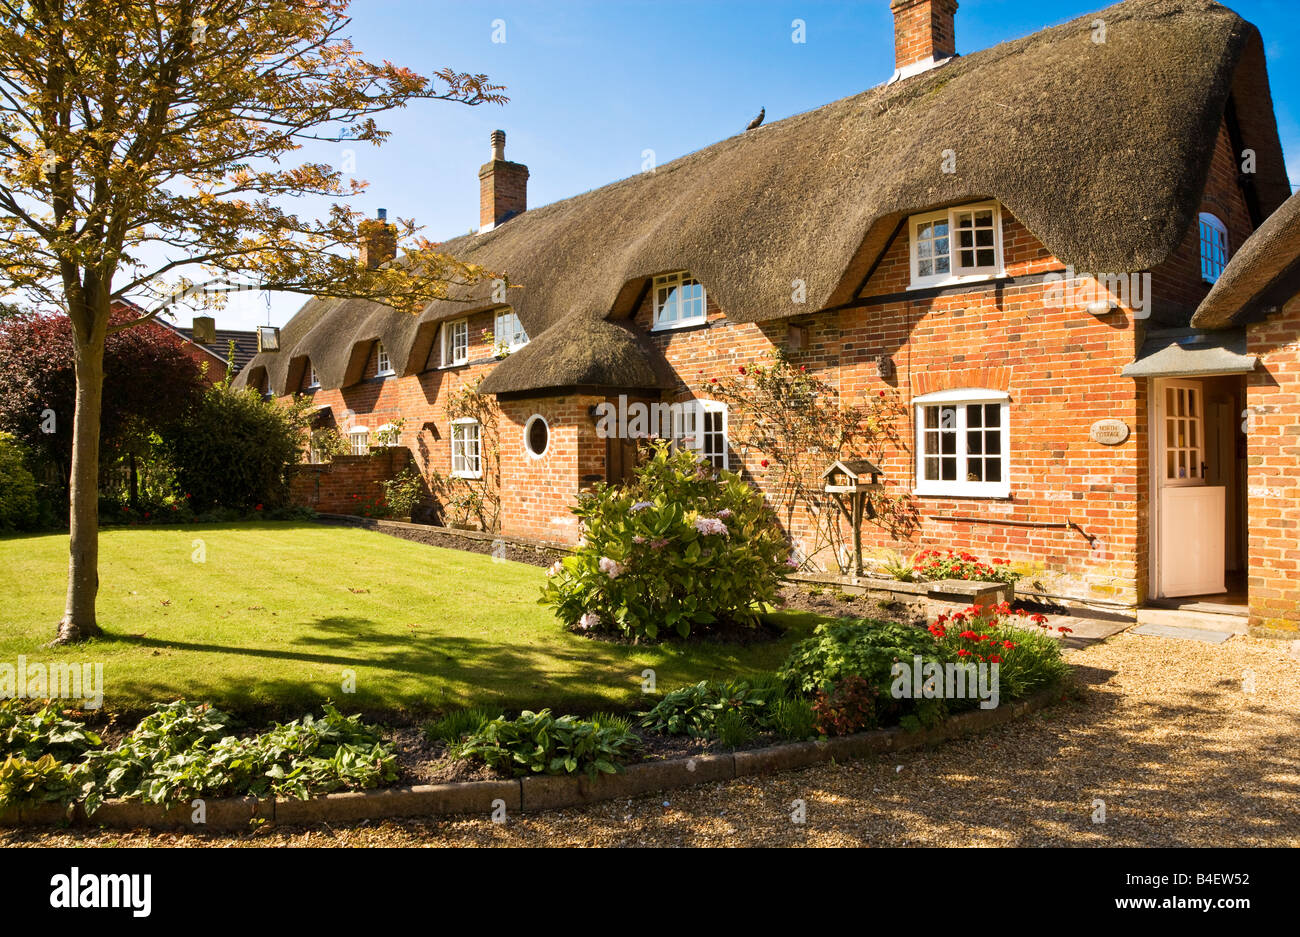 Typical pretty English thatched country cottage or house in the village of All Cannings, Wiltshire, England, Great - Stock Image